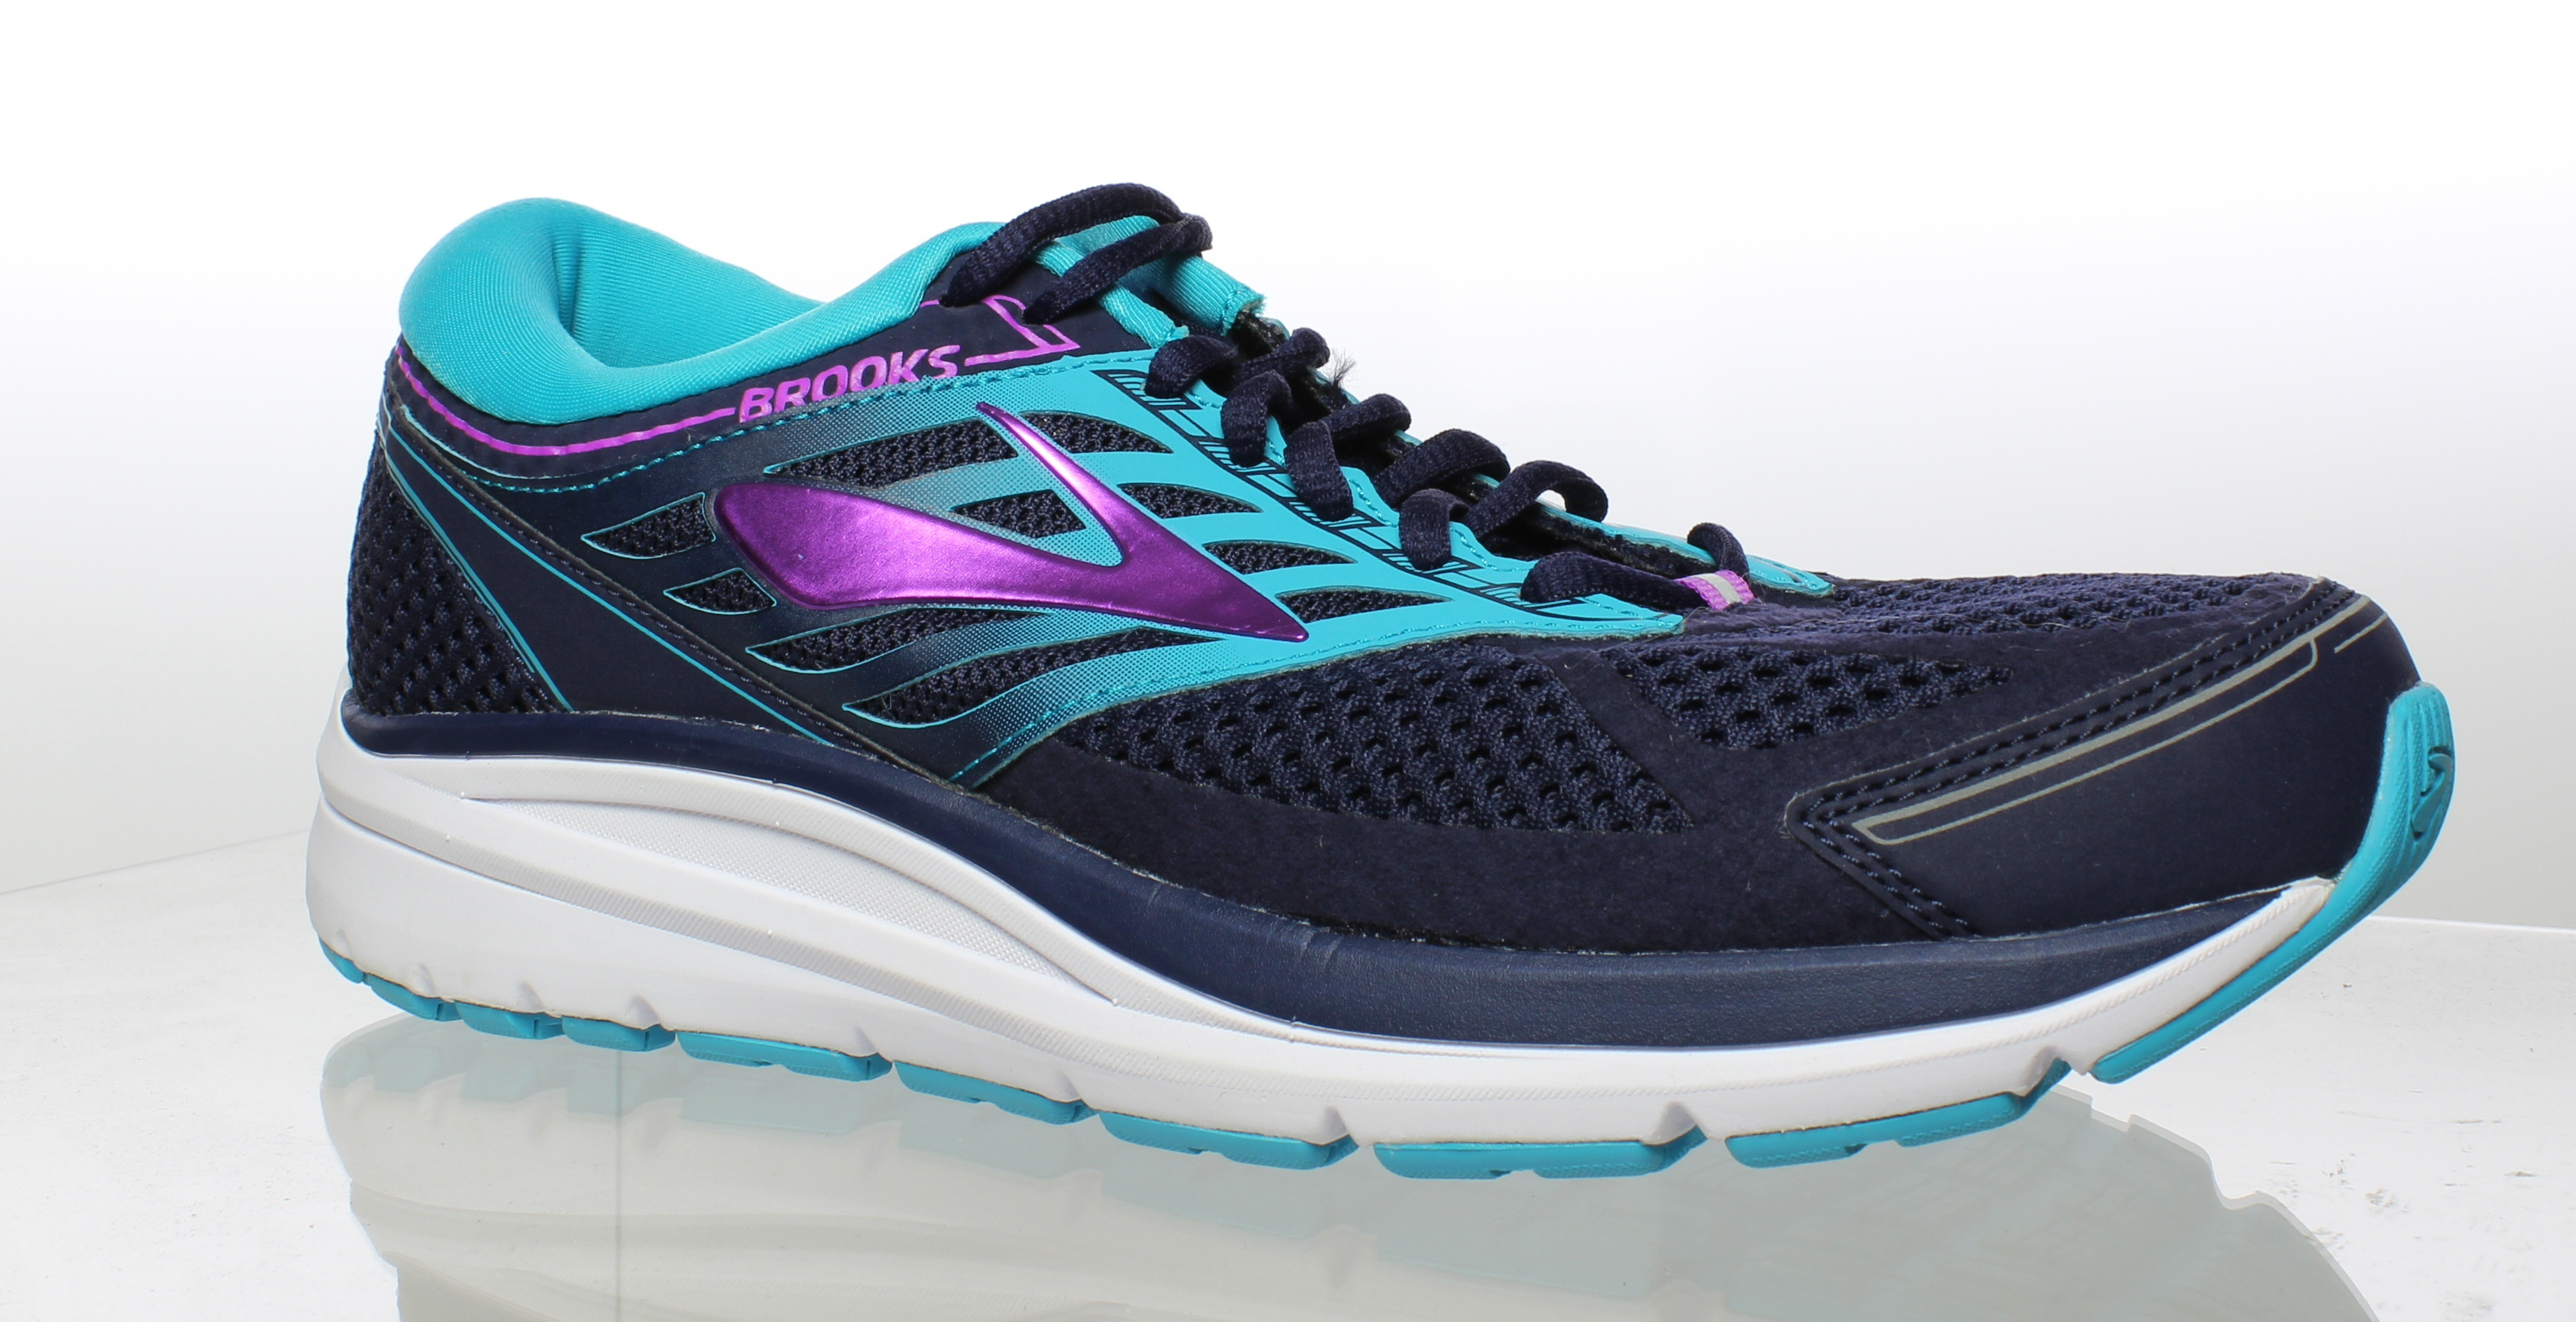 Brooks Womens Addiction 13 Blue Running Shoes Size 11 (28419)